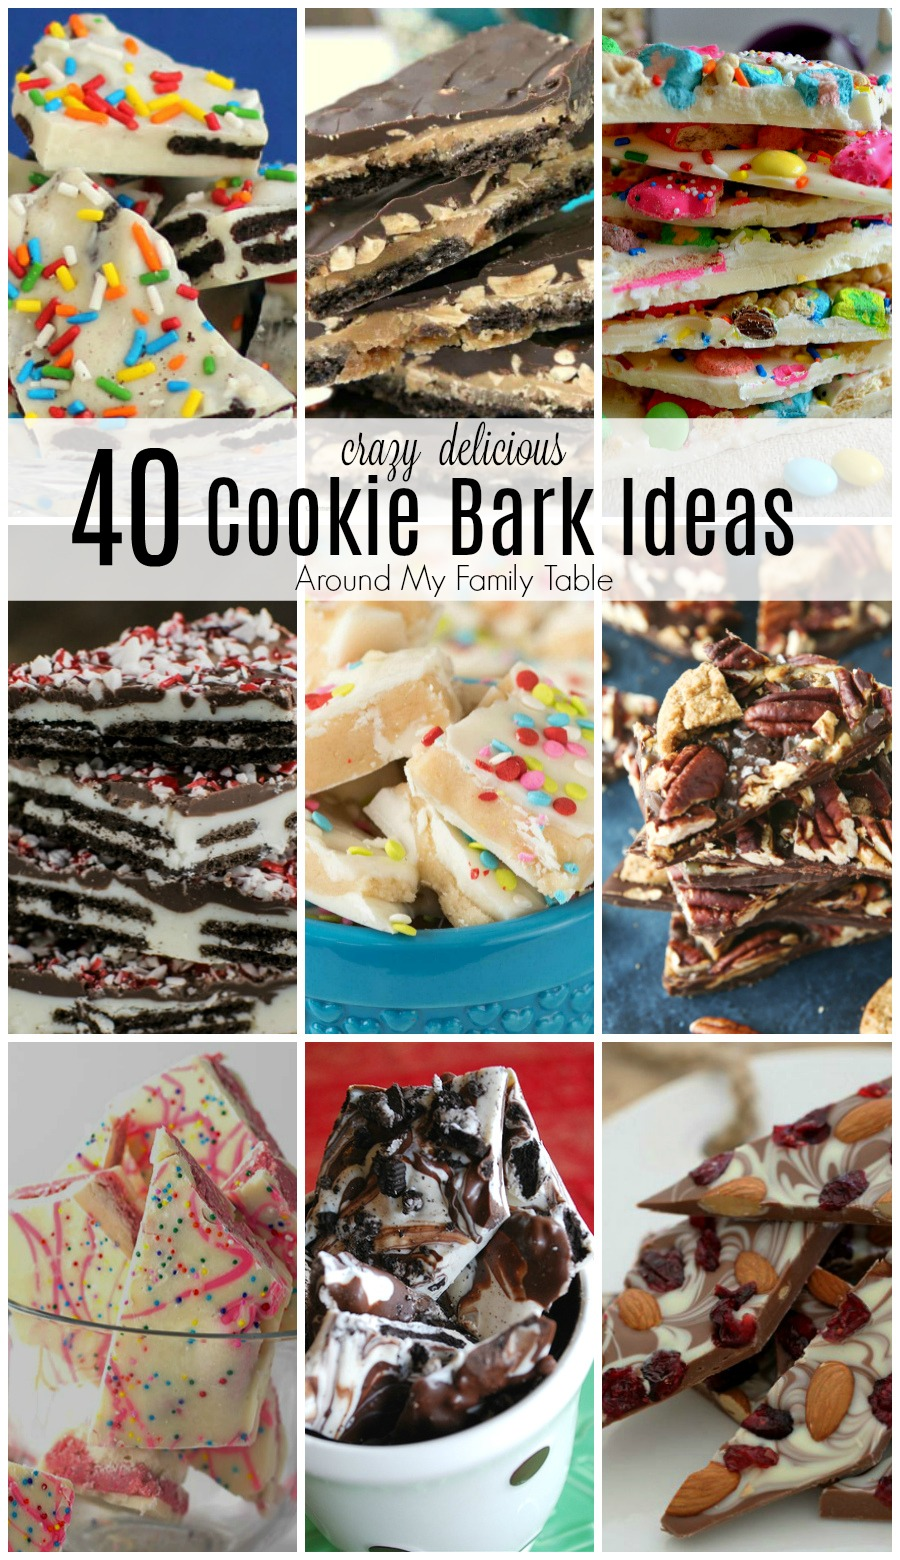 40 Crazy Delicious Cookie Bark Ideas to make on a rainy day, as thank you gifts, holiday gifts, or party favors! The possibilities are endless. #cookiebark #recipes #candybark